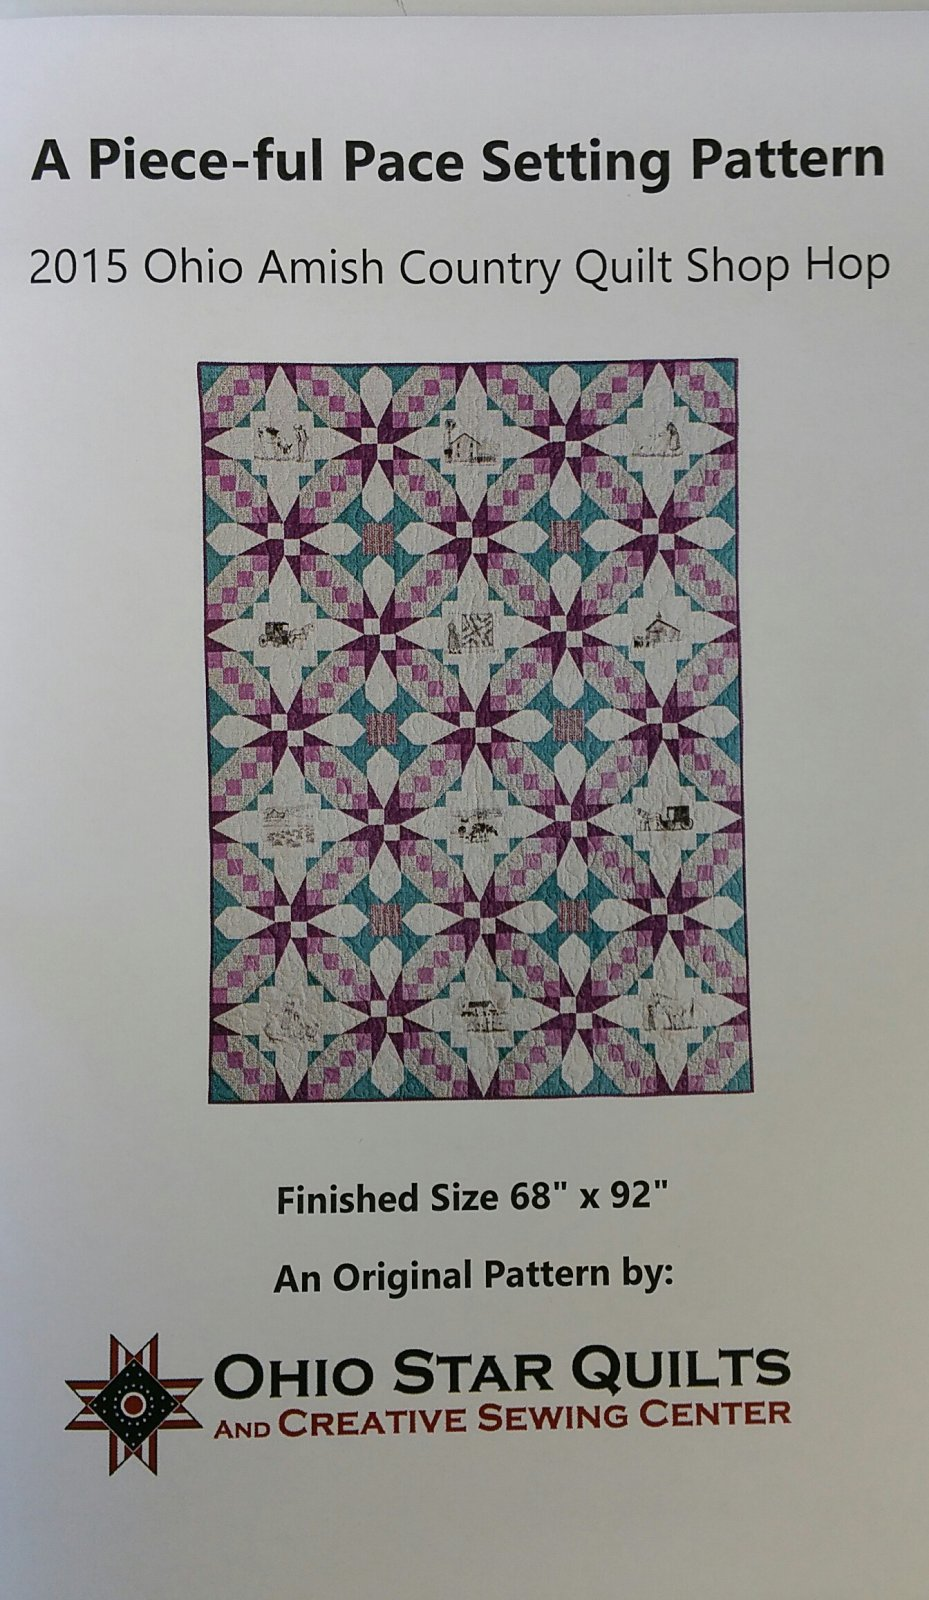 2015 Amish Country Quilt Shop Hop Setting Pattern